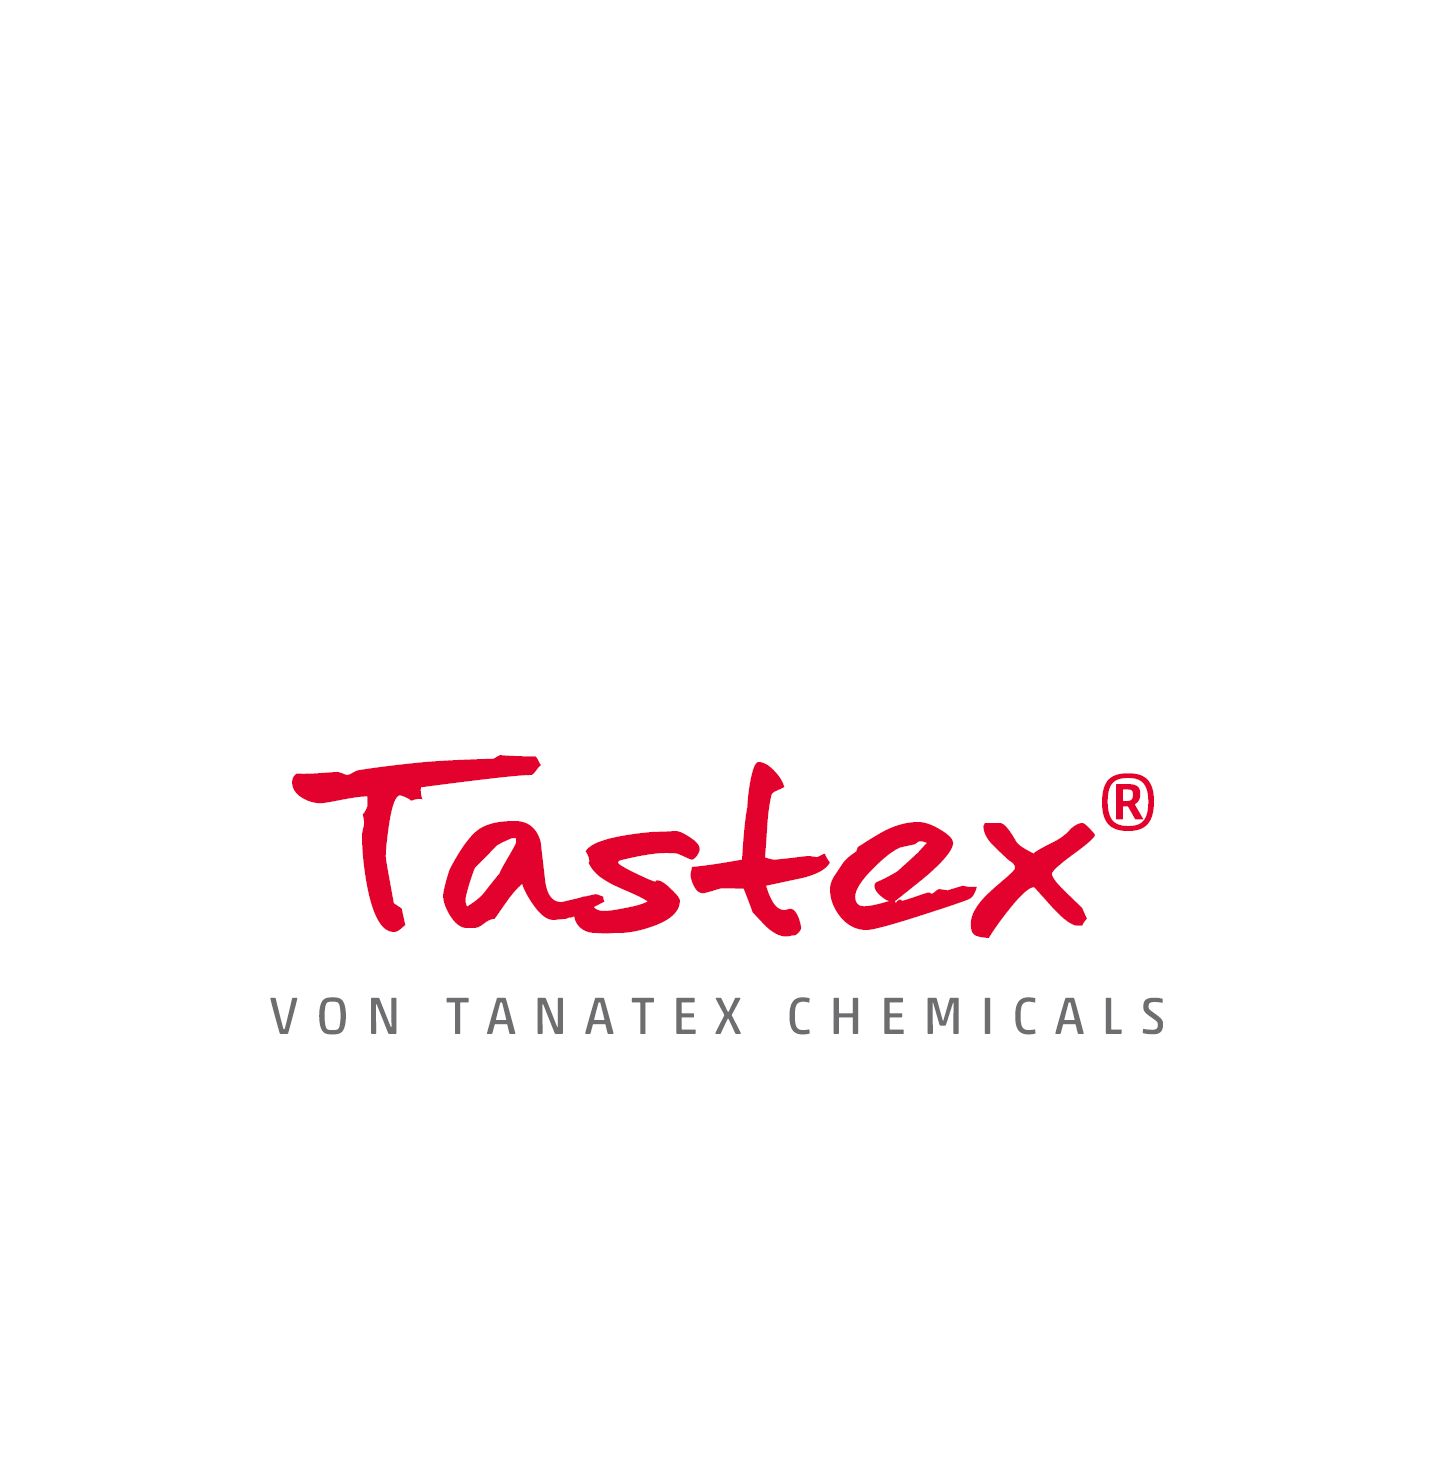 Tastex durable cosmetic textiles